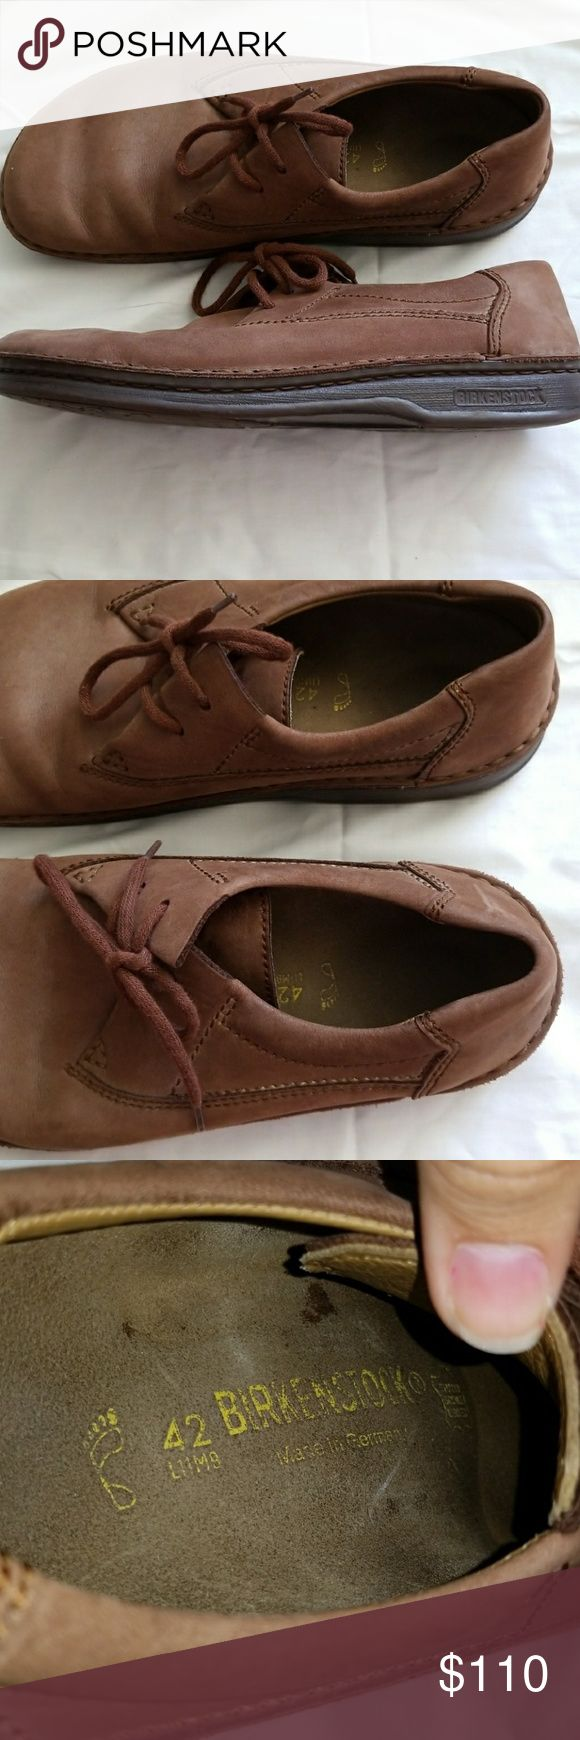 Brown Mens Birkenstock Shoes Medium to dark brown suede mens loafers. Worn once in great shape. Some slight marks underlaces not noticeable when worn. Shoelace ties on top. Sz 42   Perfect gift for Fathers day!!  Mens size 9 Women's size 11  Very willing to negotiate Birkenstock Shoes Loafers & Slip-Ons